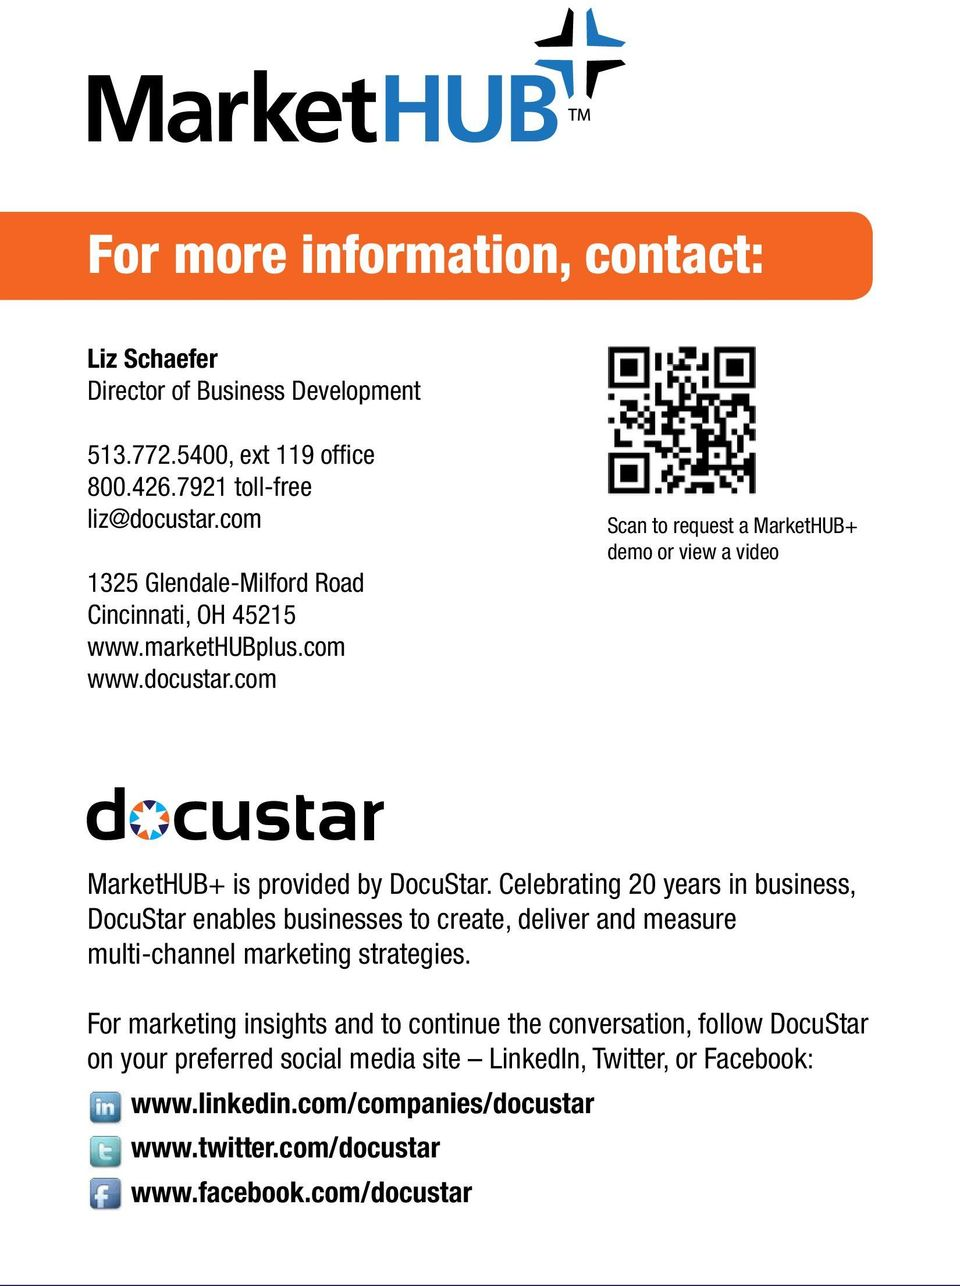 com Scan to request a MarketHUB+ demo or view a video MarketHUB+ is provided by DocuStar.